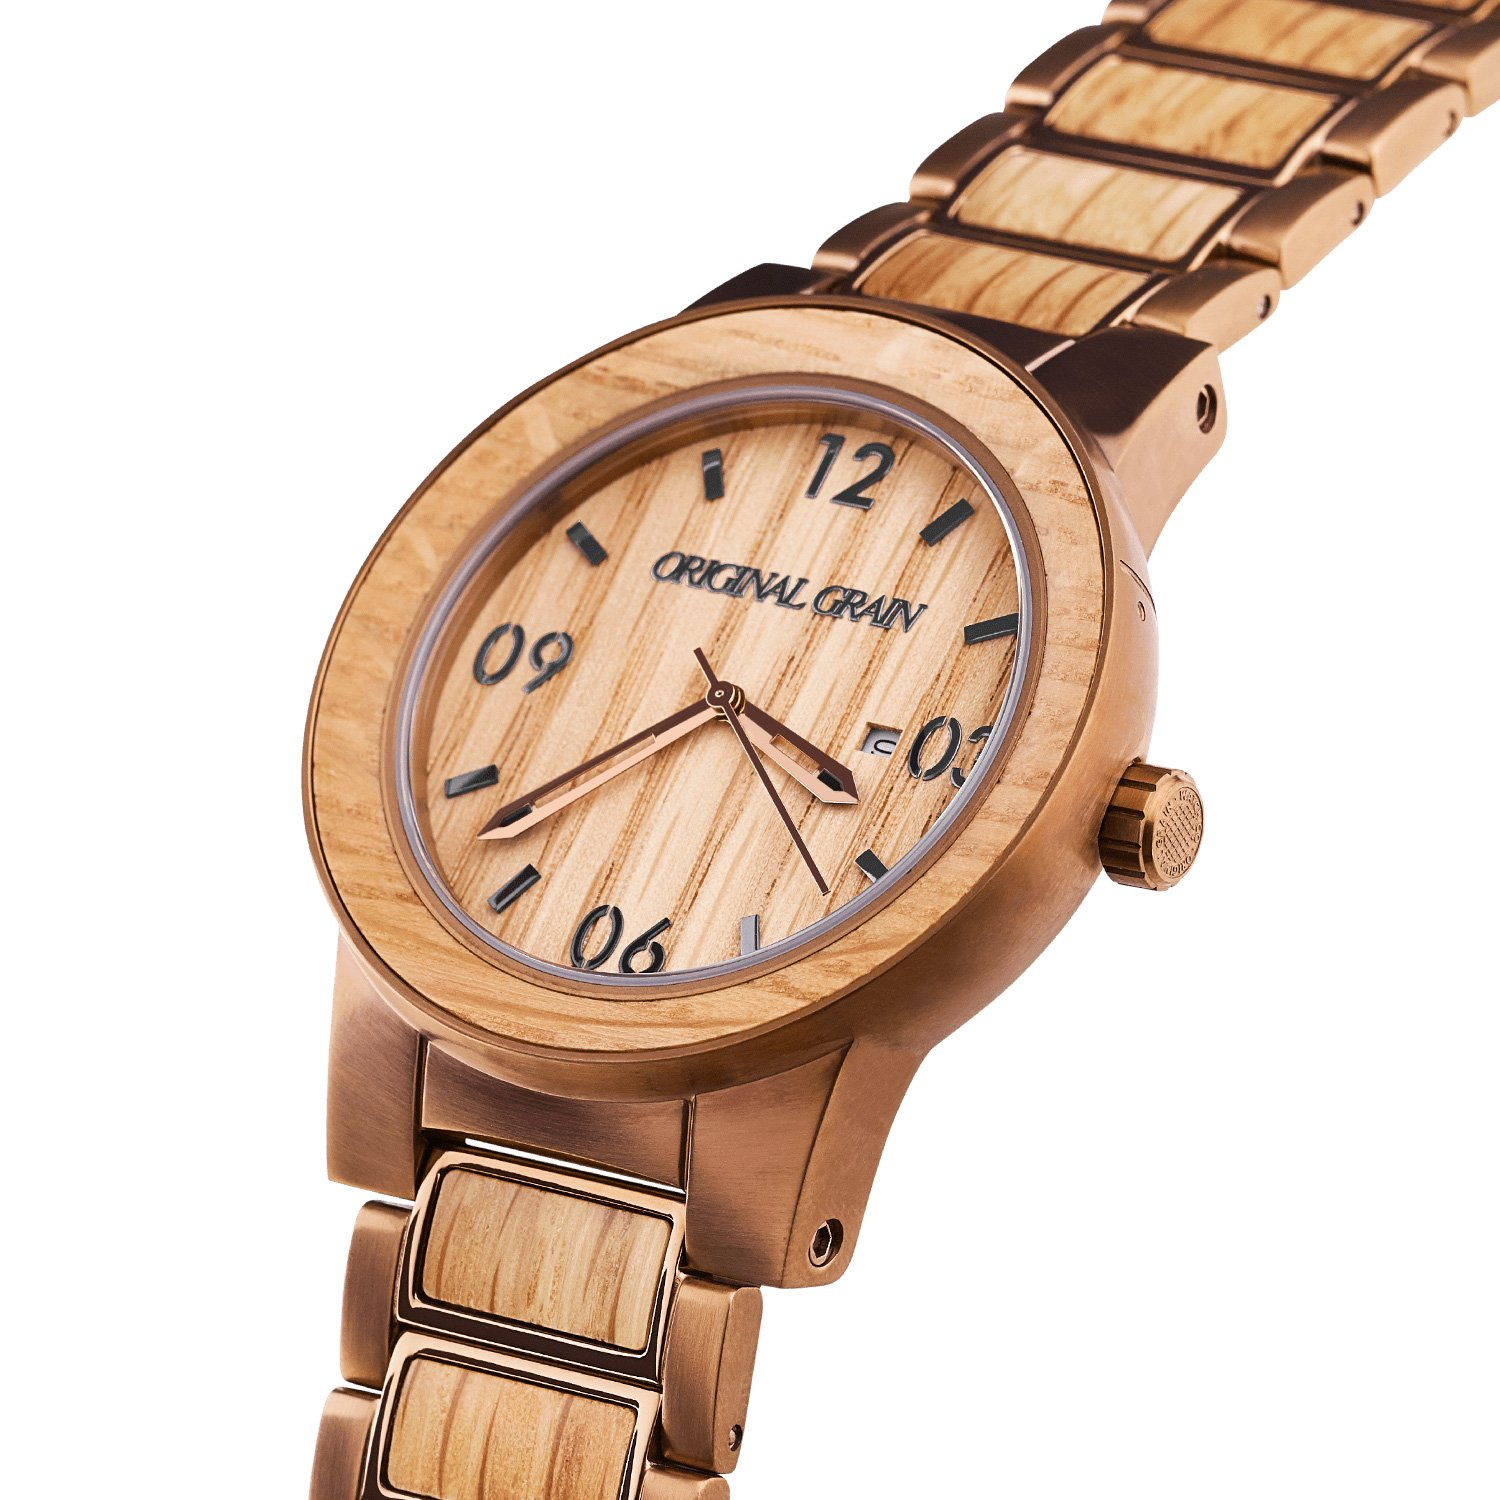 handcrafted watches wooden sunglasses true propwood edit minimalistic eyewear wood